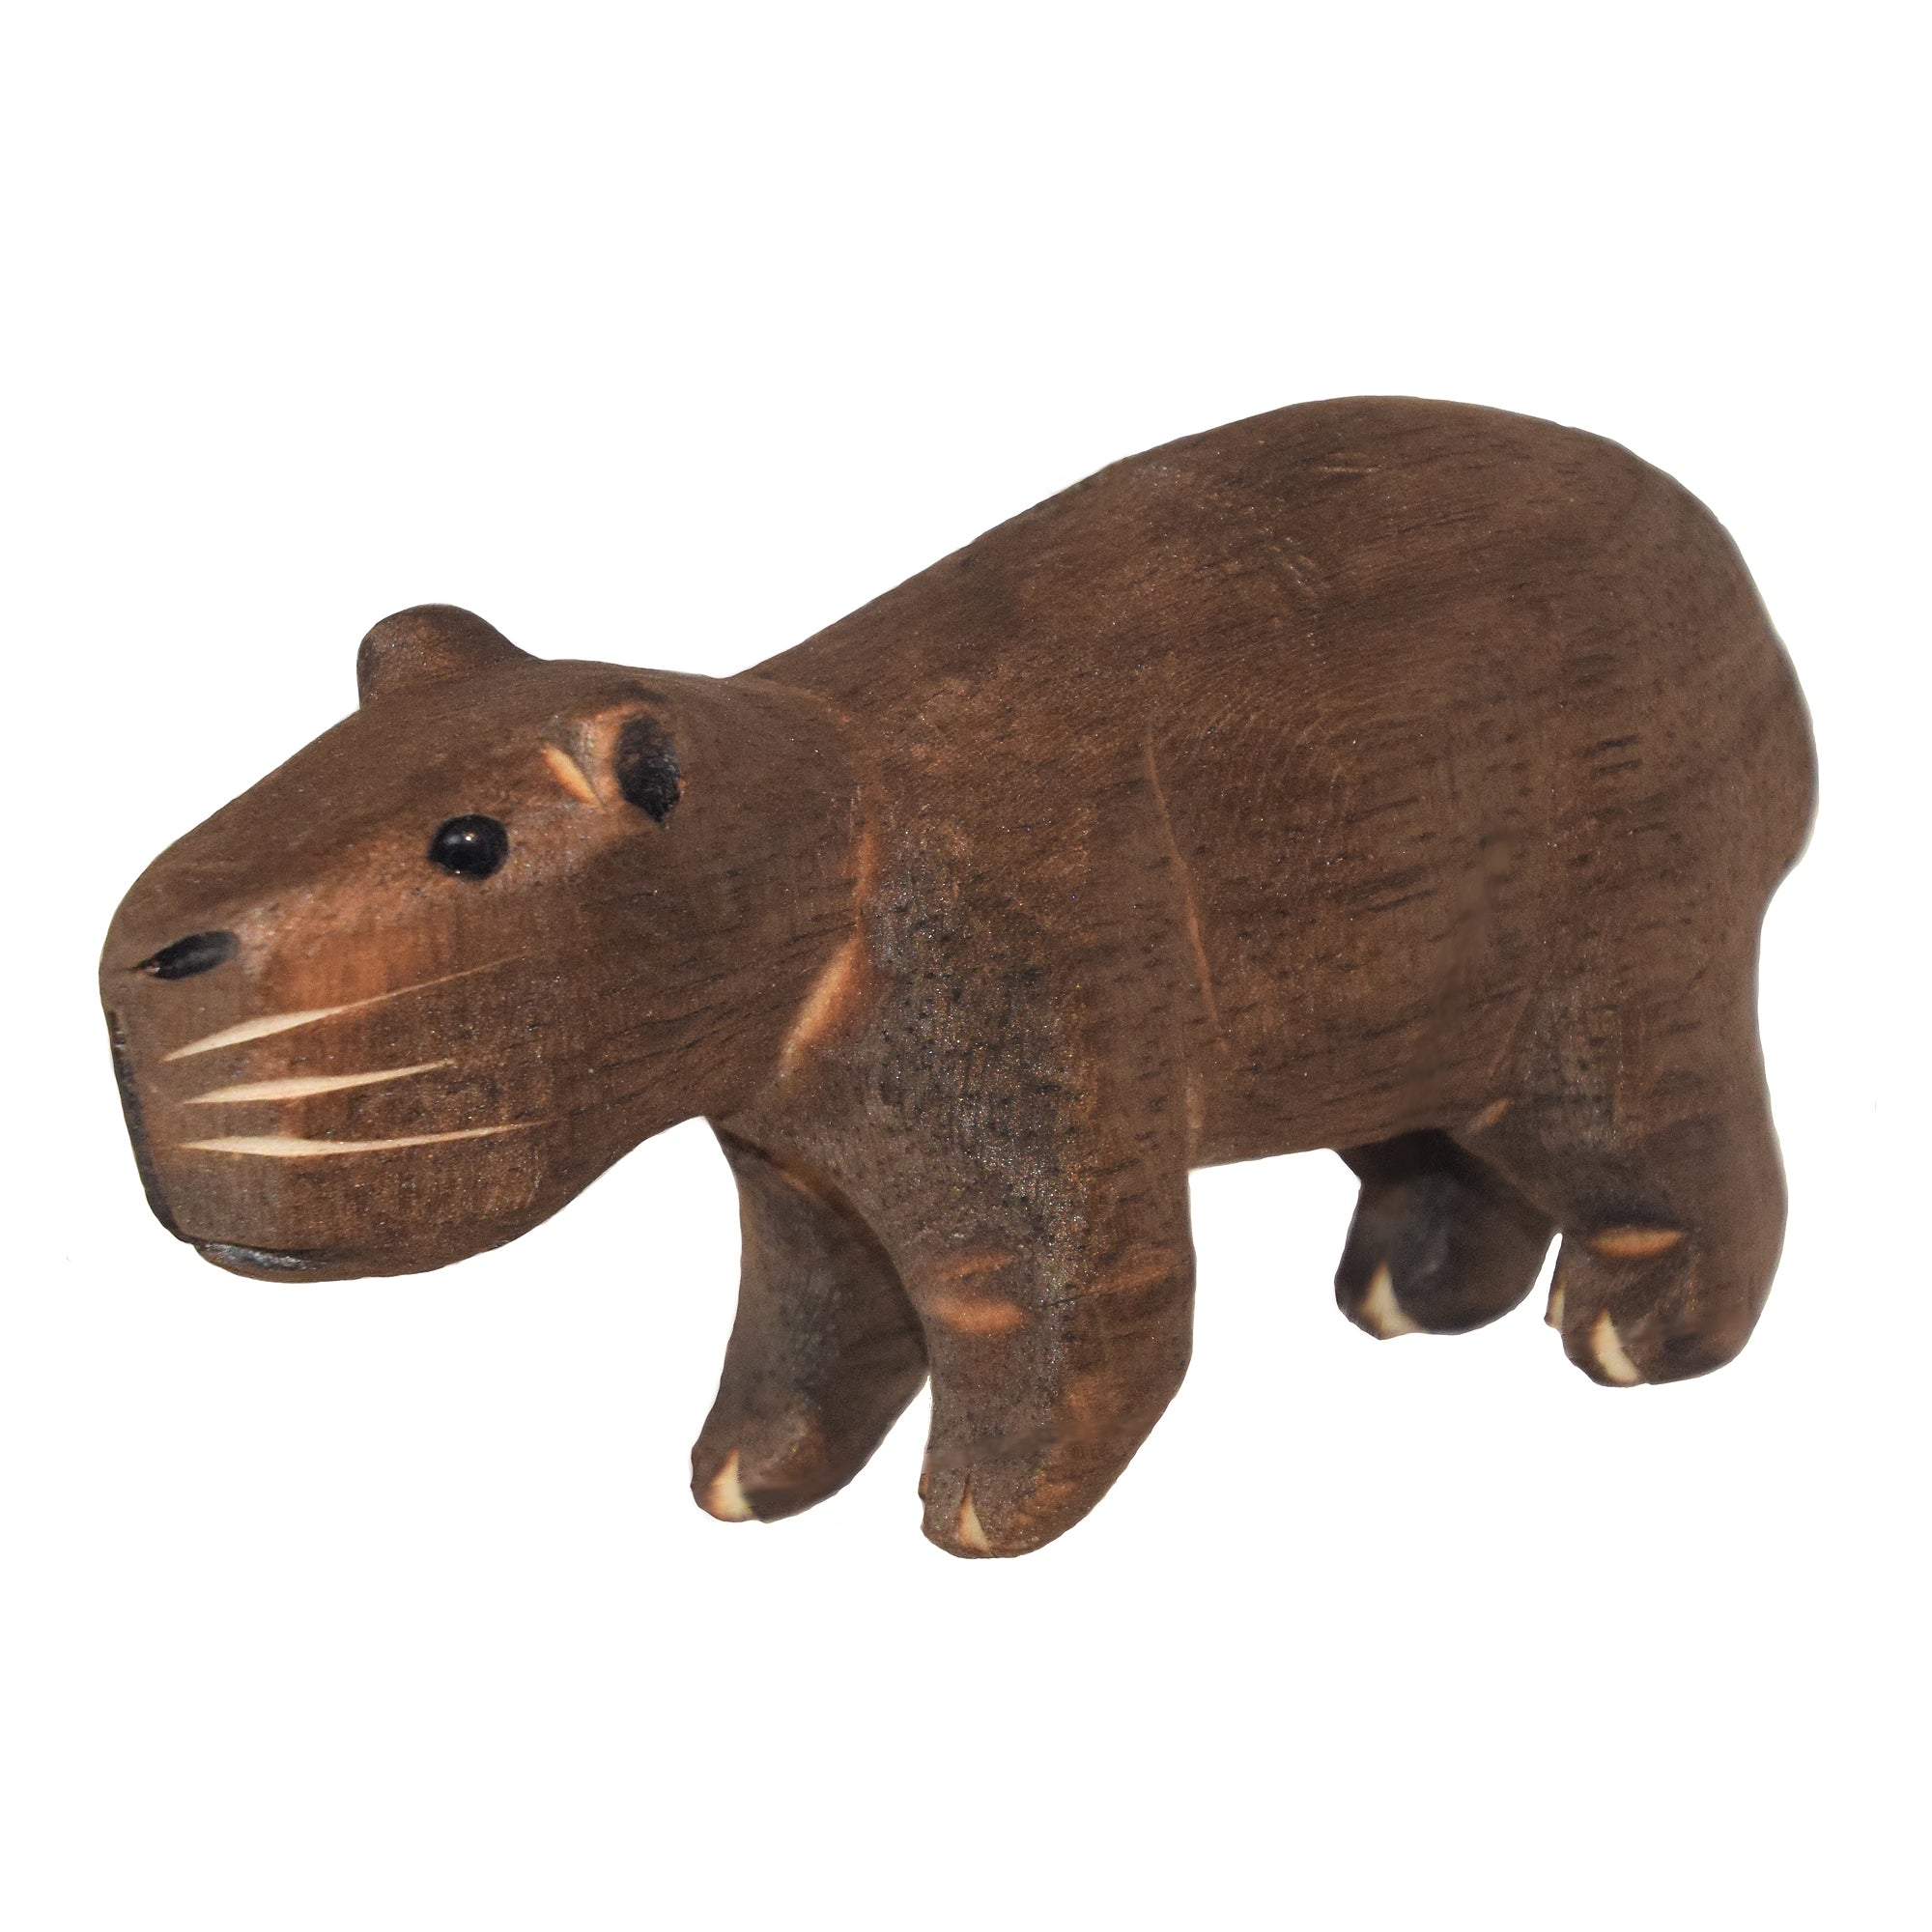 CAPYBARA BALSA WOOD FAIR -TRADE ORNAMENT - CARVED BY PERUVIAN AMAZON ARTISAN